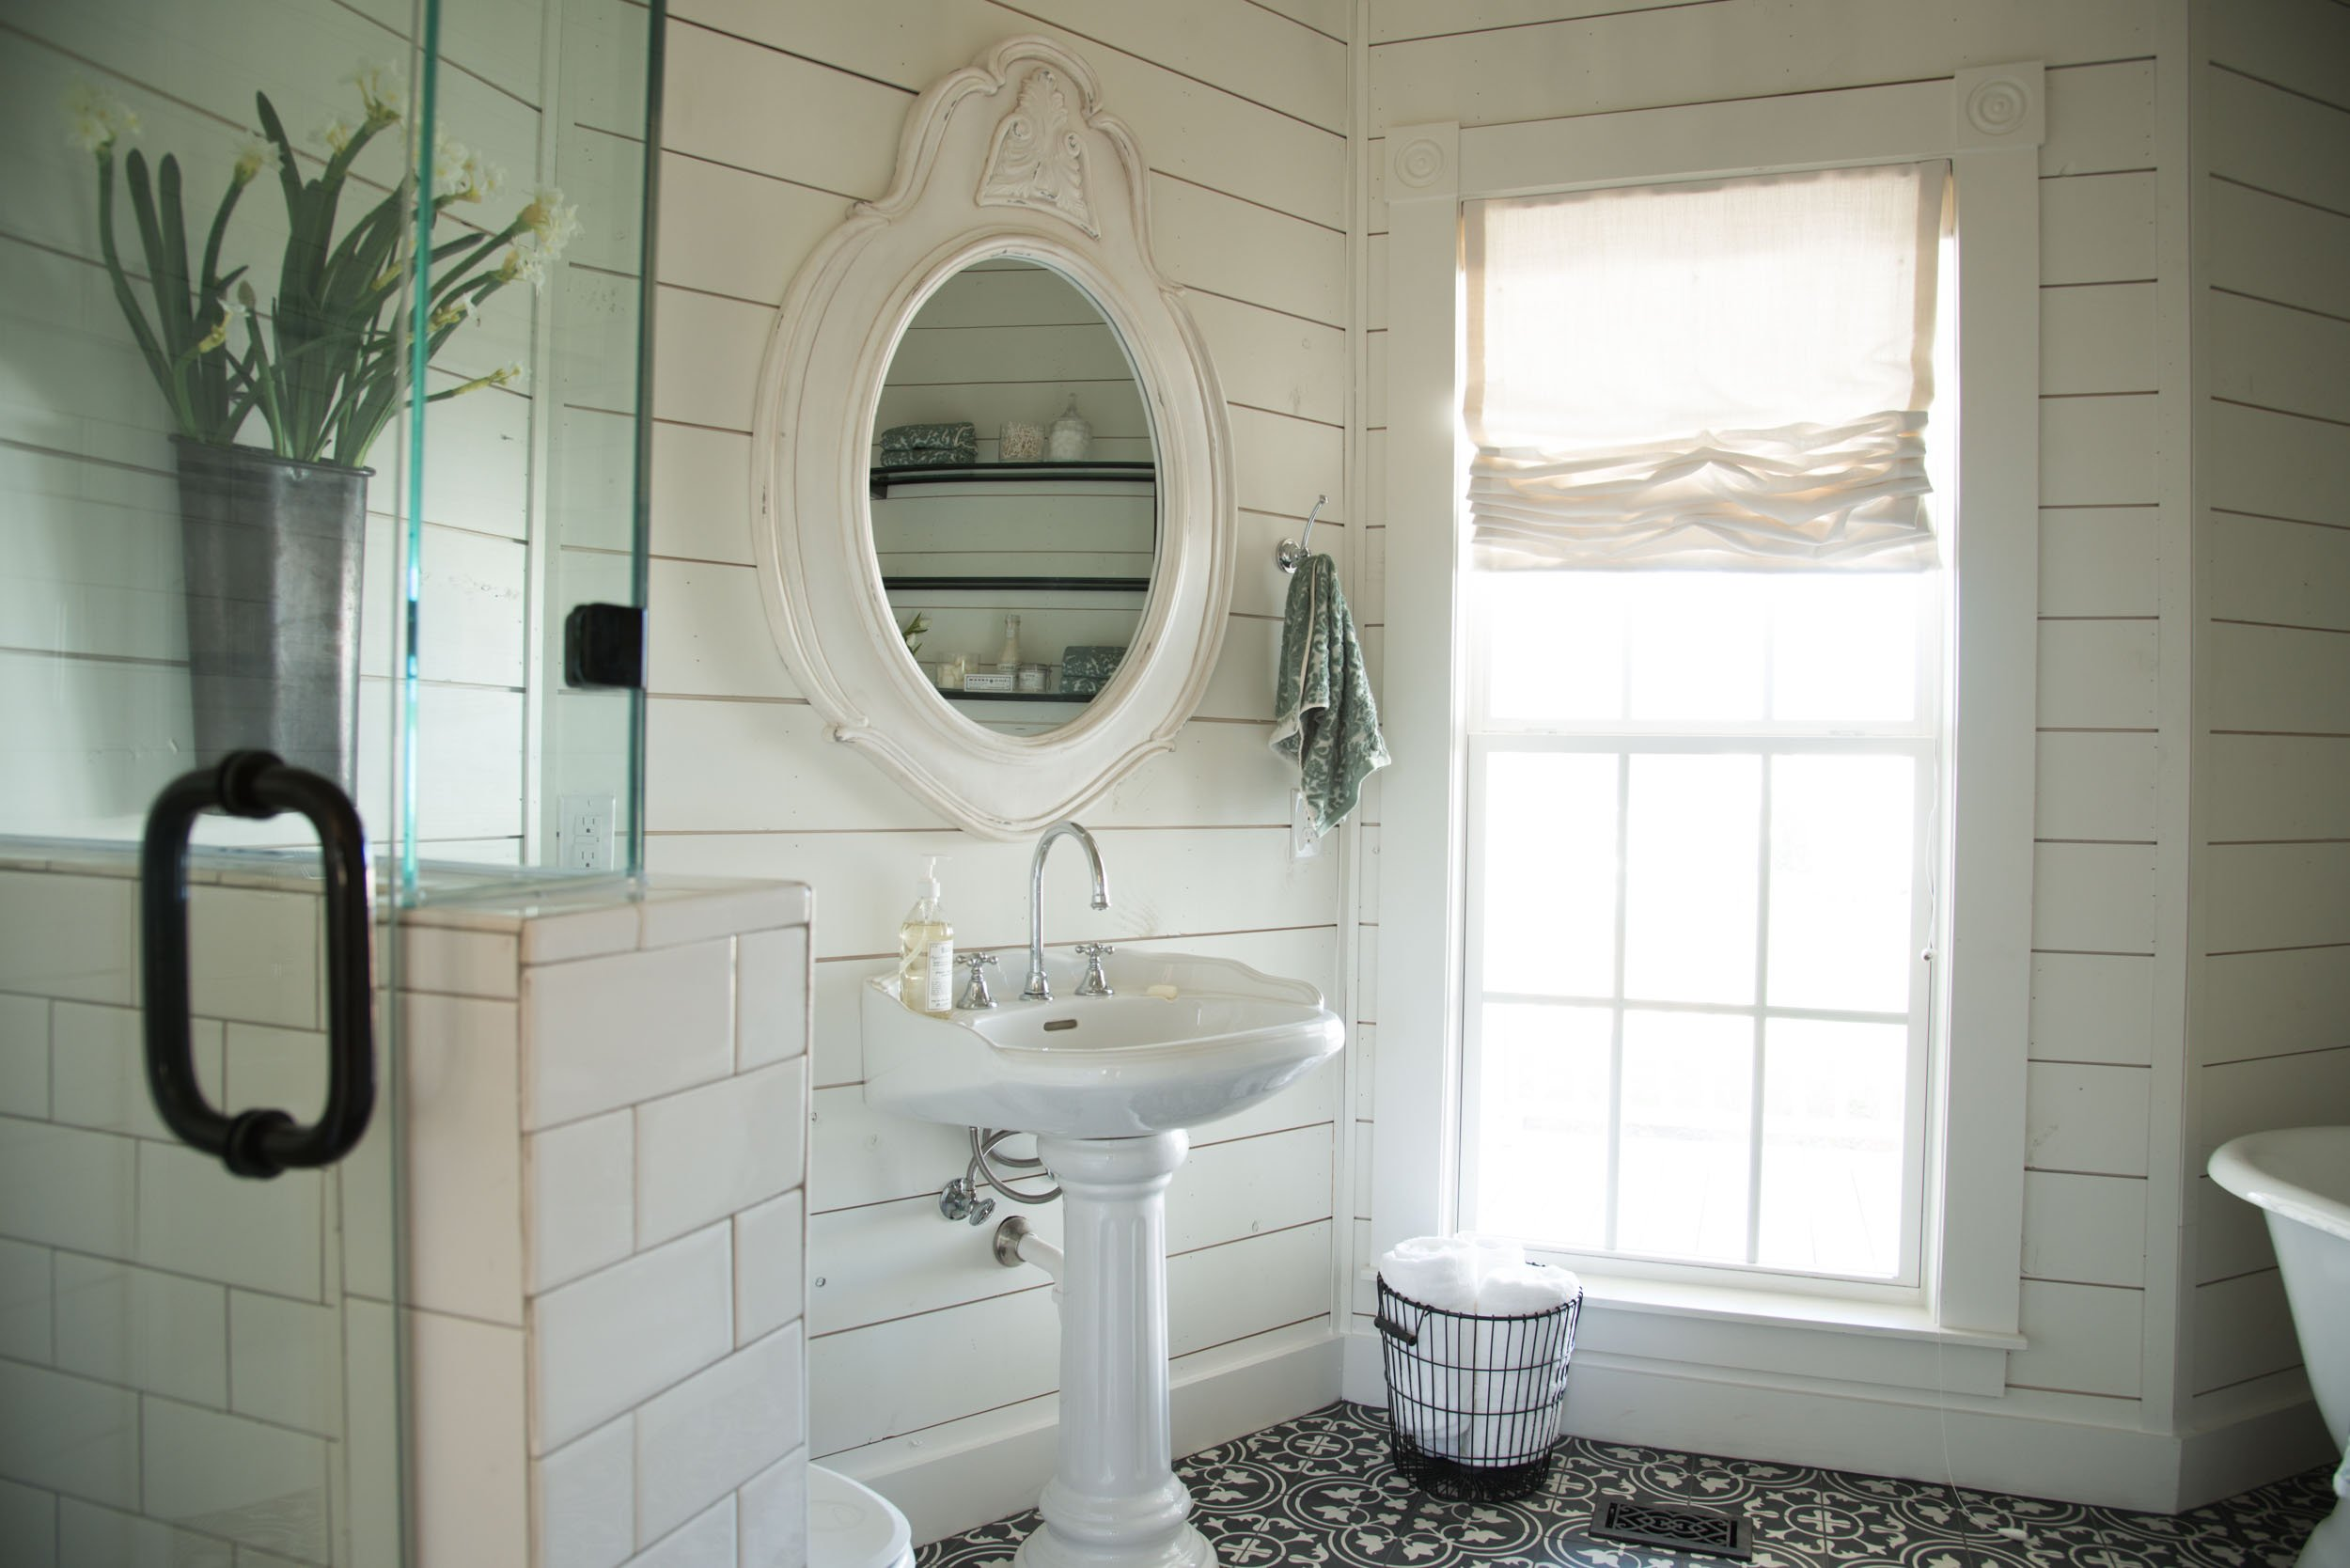 I love this bathroom in the Fixer Upper Magnolia House